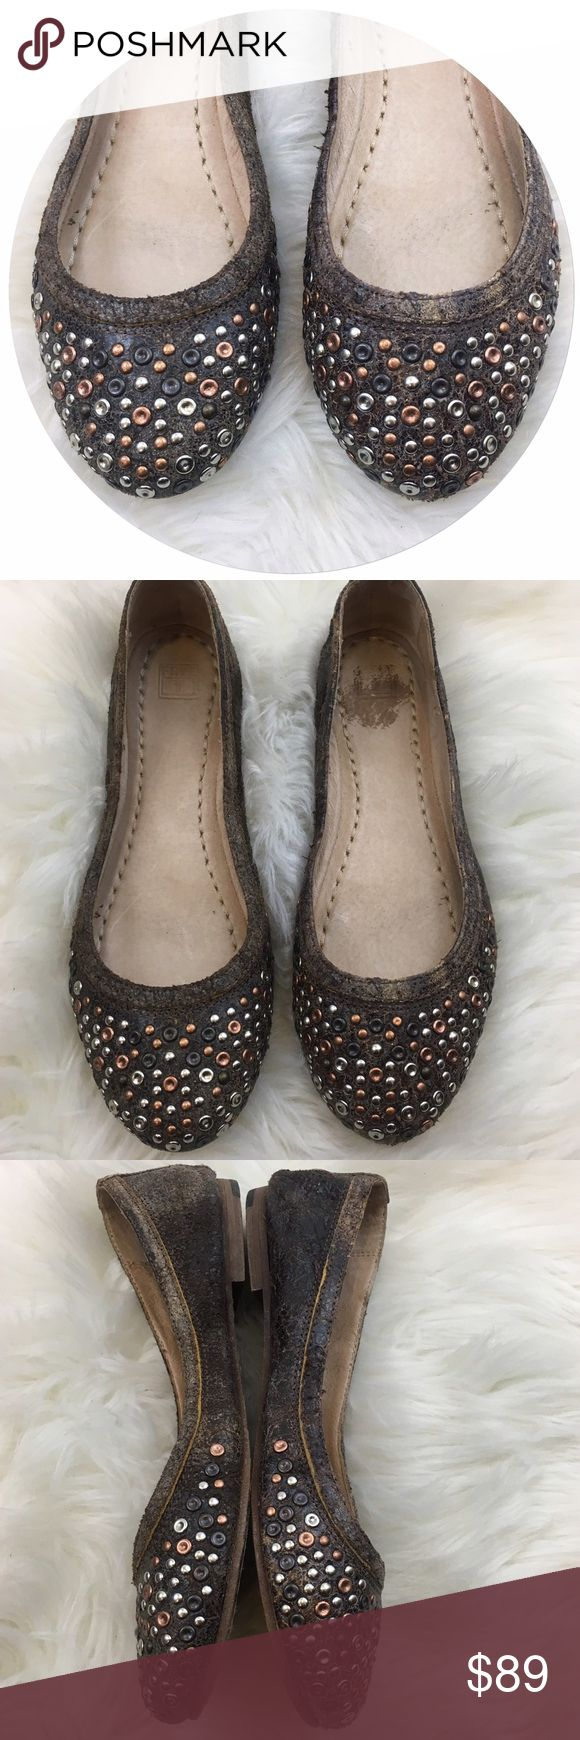 Frye Carson Studded Ballet Flats Size 8.5 Be daring in the Frye Carson studded ballet flat and you'll be sure to dazzle everyone. This everyday flat has a little extra flavor with the studded detailing across the toe. These shoes are perfect to get you from point A to point B, and are sure to turn every head you pass along the way! They've been taken care of very well. Please see photos for any wear.  ✨If you'd like me to lower these enough for CLOSET Clear Out just let me know and I'll drop…